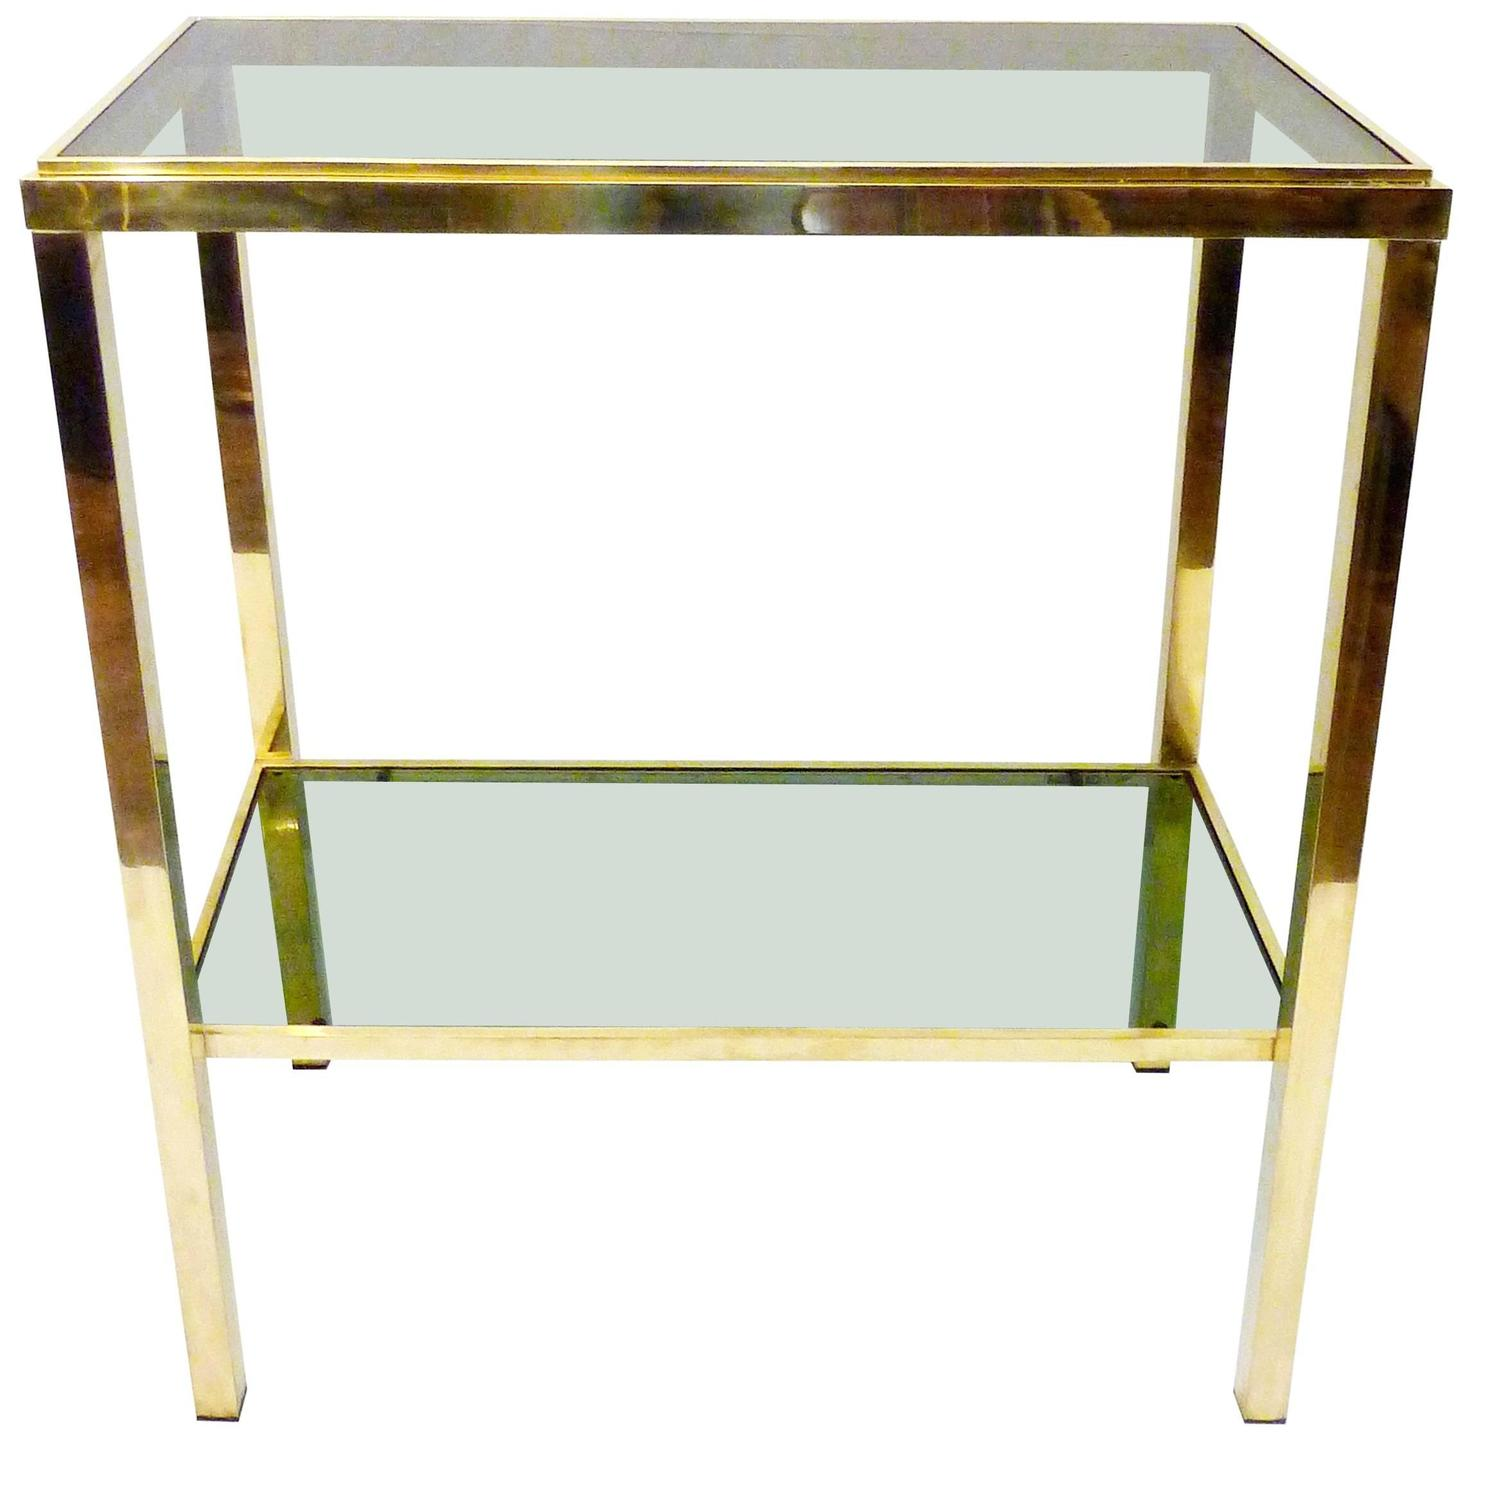 Narrow Demilune Console Tables Italian Two-Tiered Brass Console Table at 1stdibs